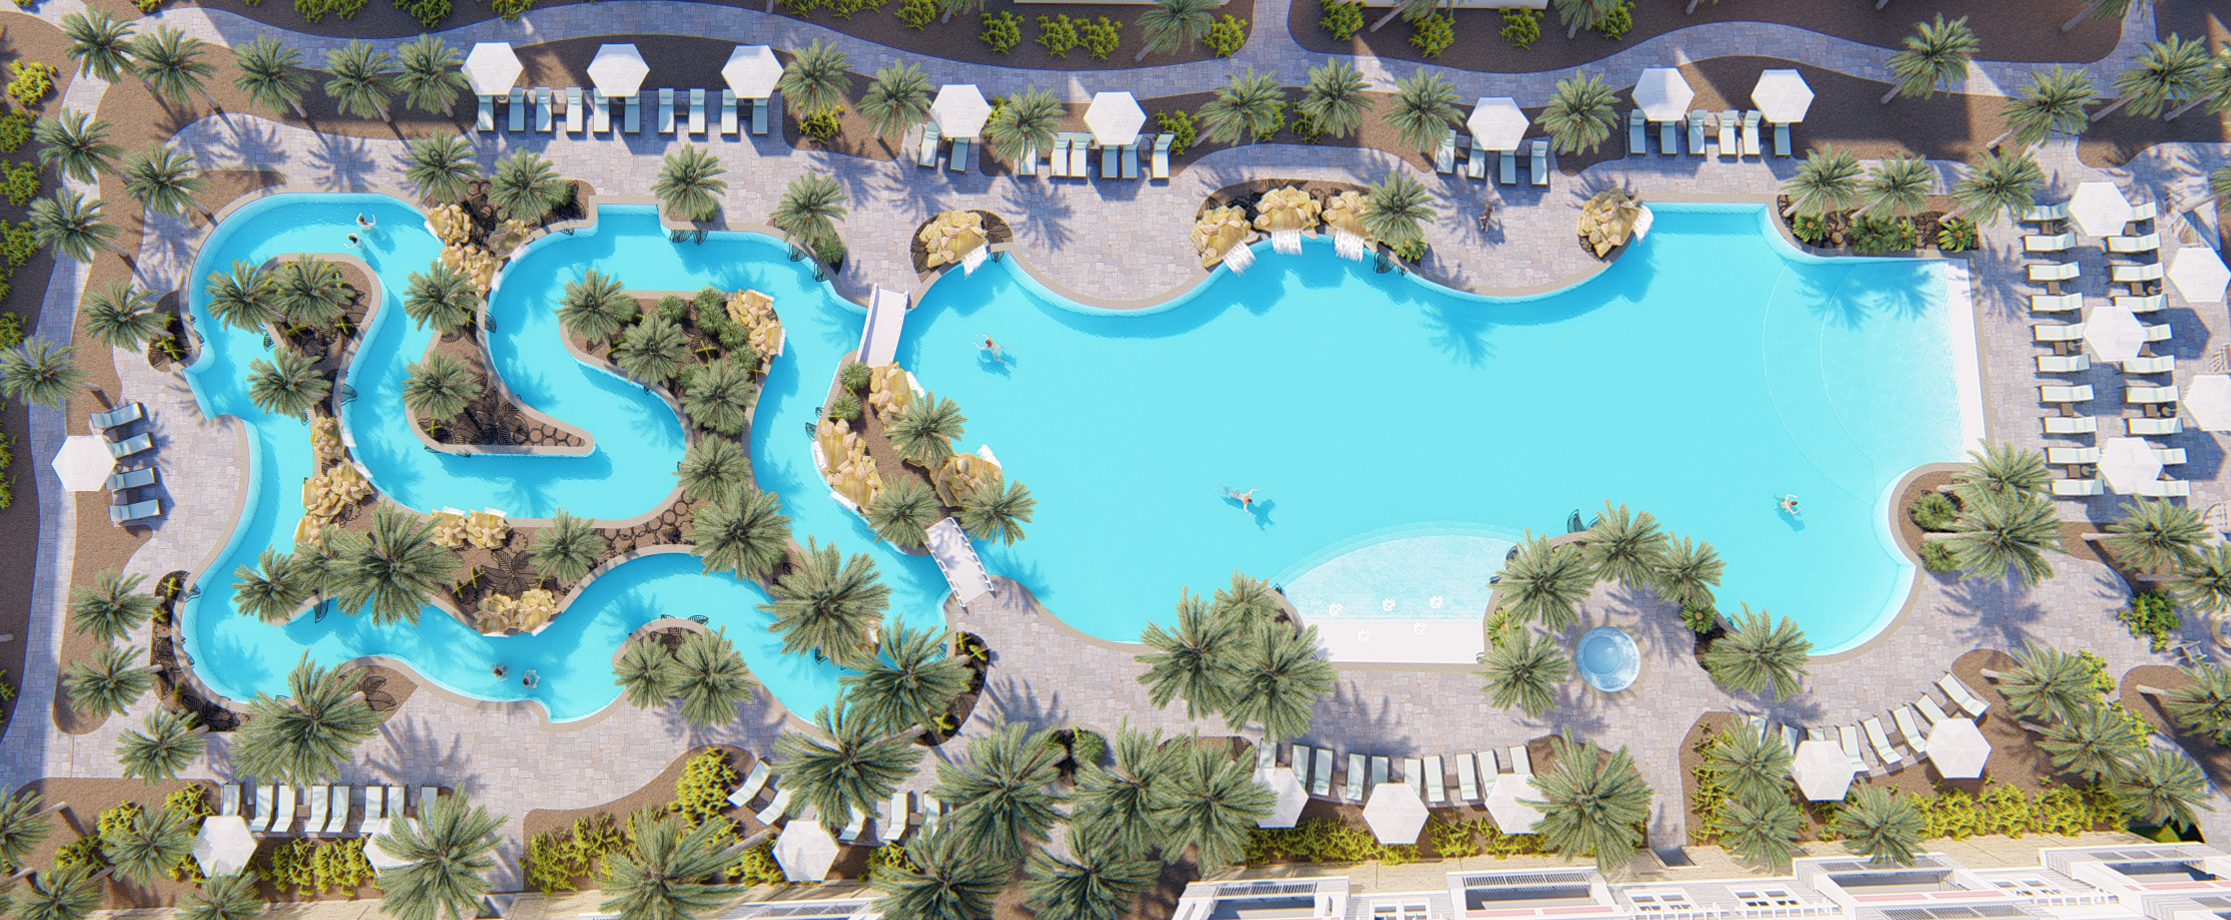 The Henderson Resort, Pool Aerial